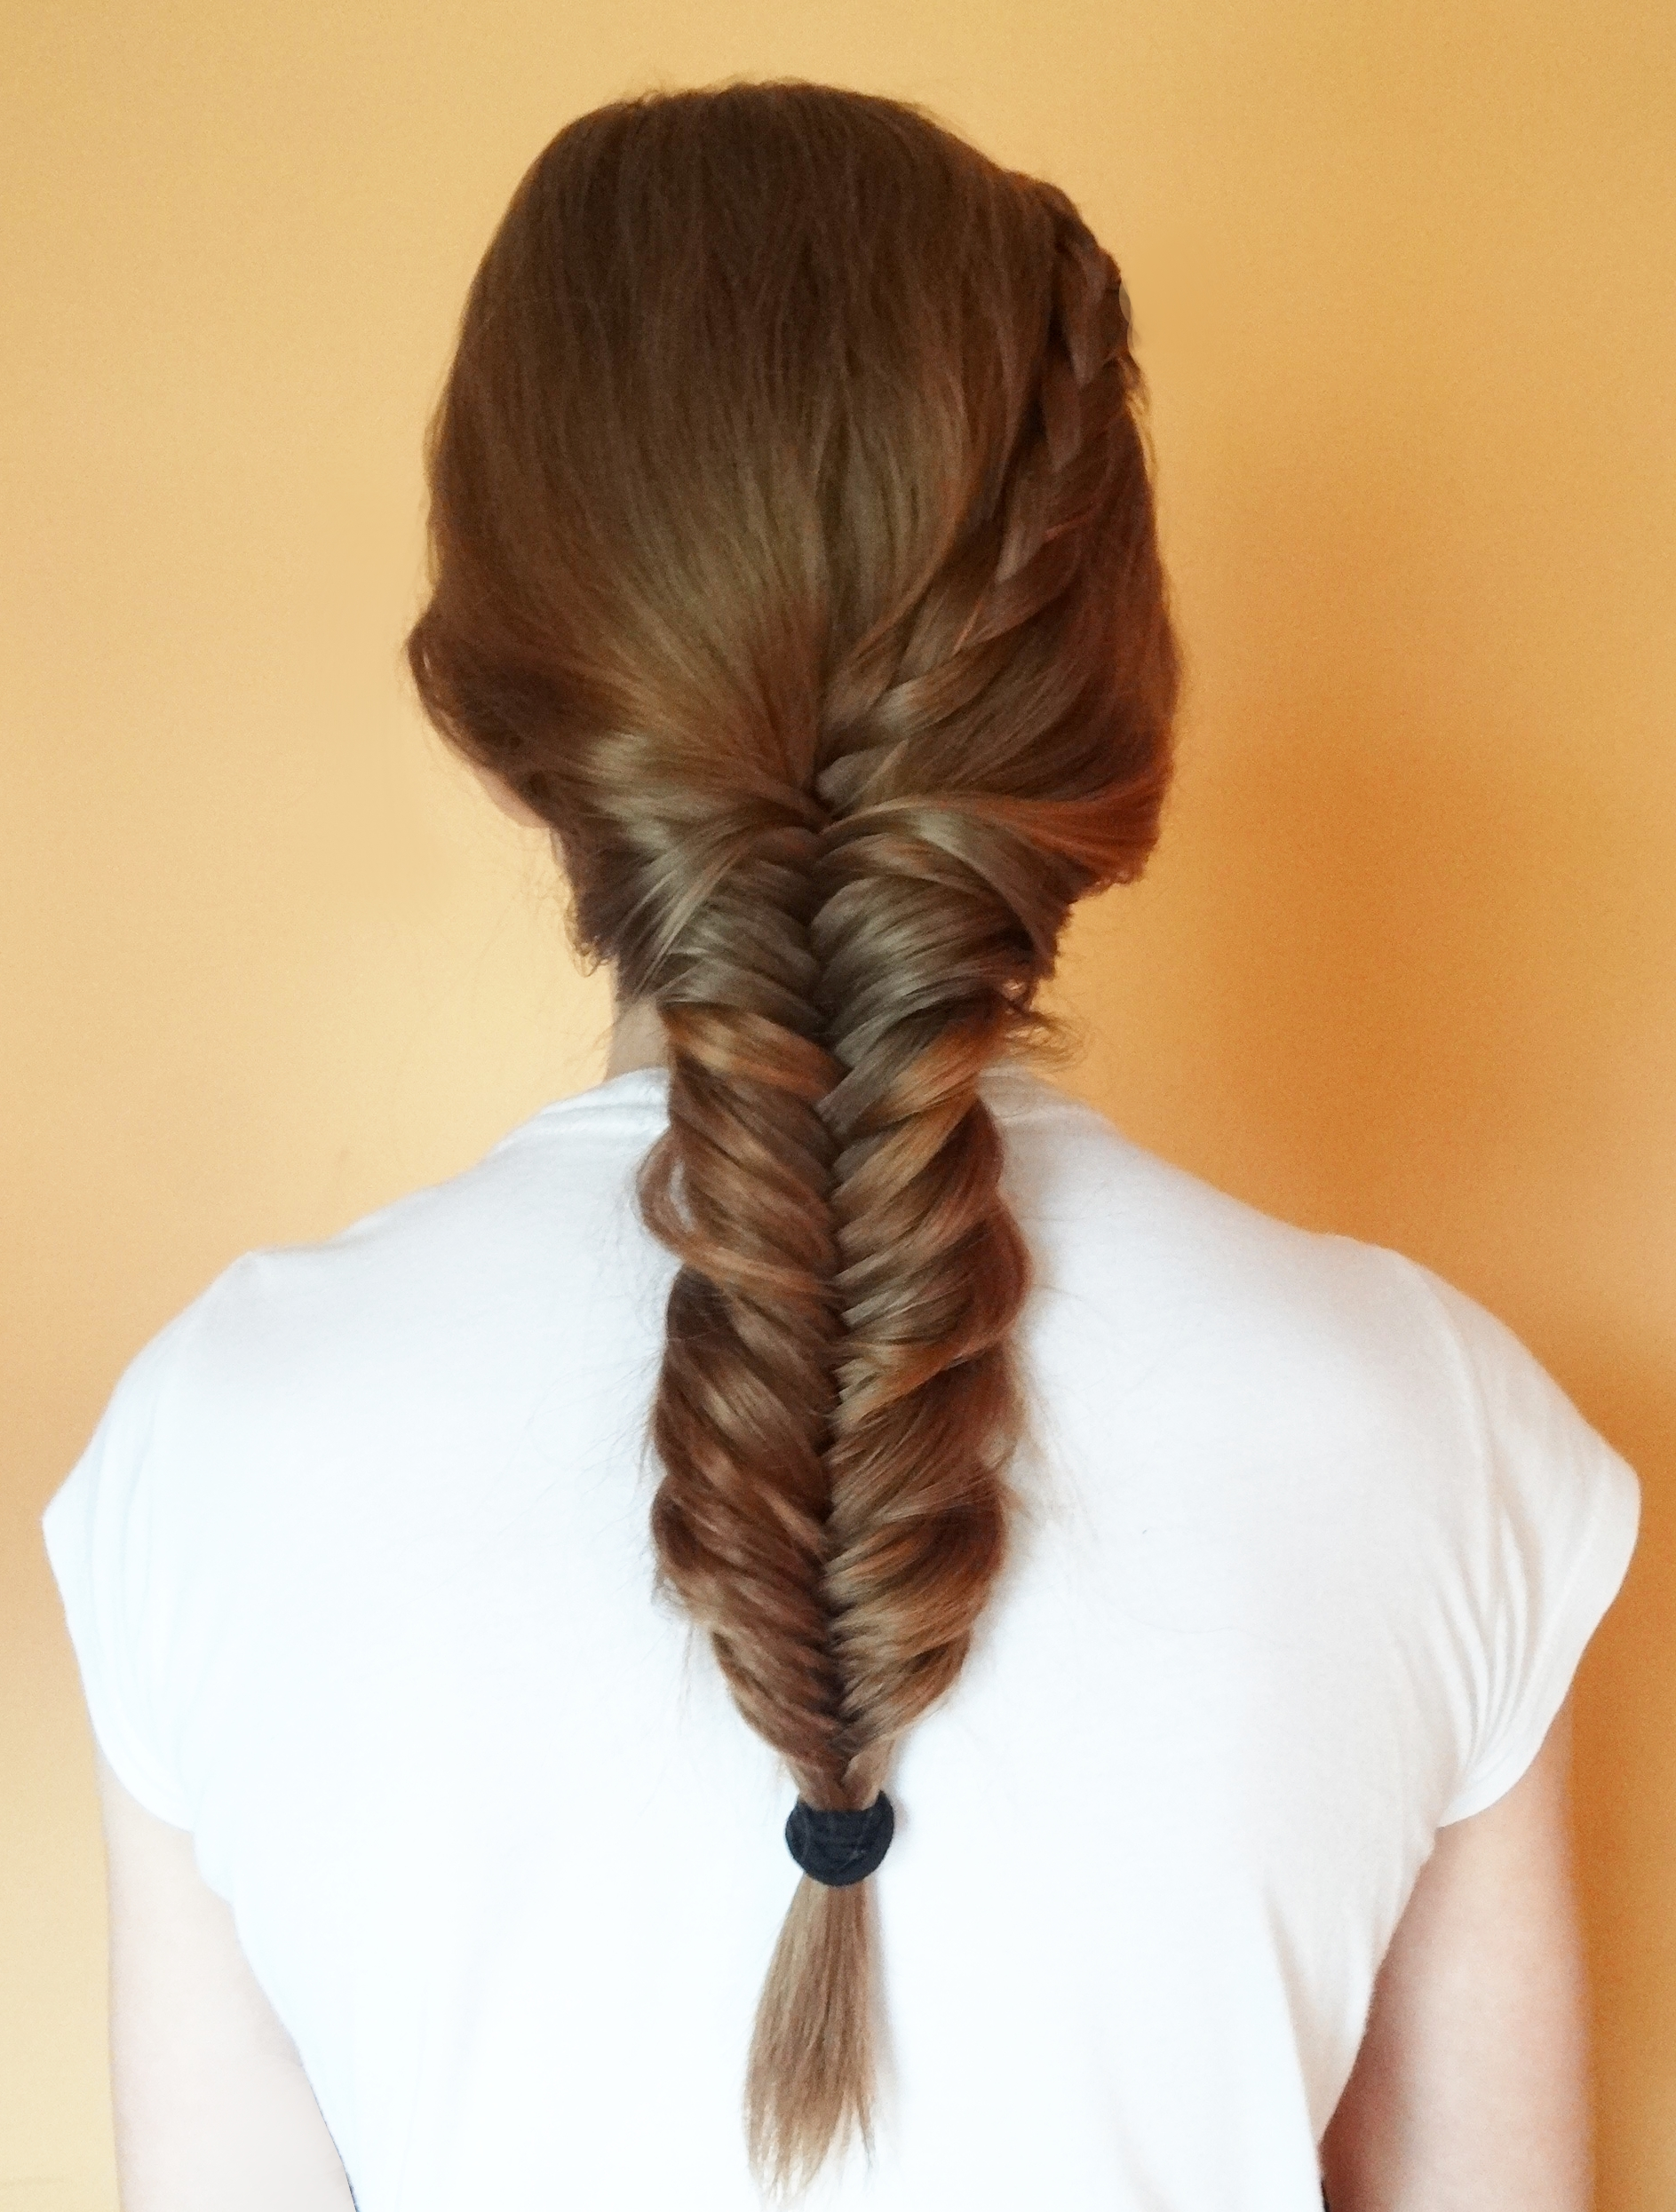 File:Fishtail Braid.JPG